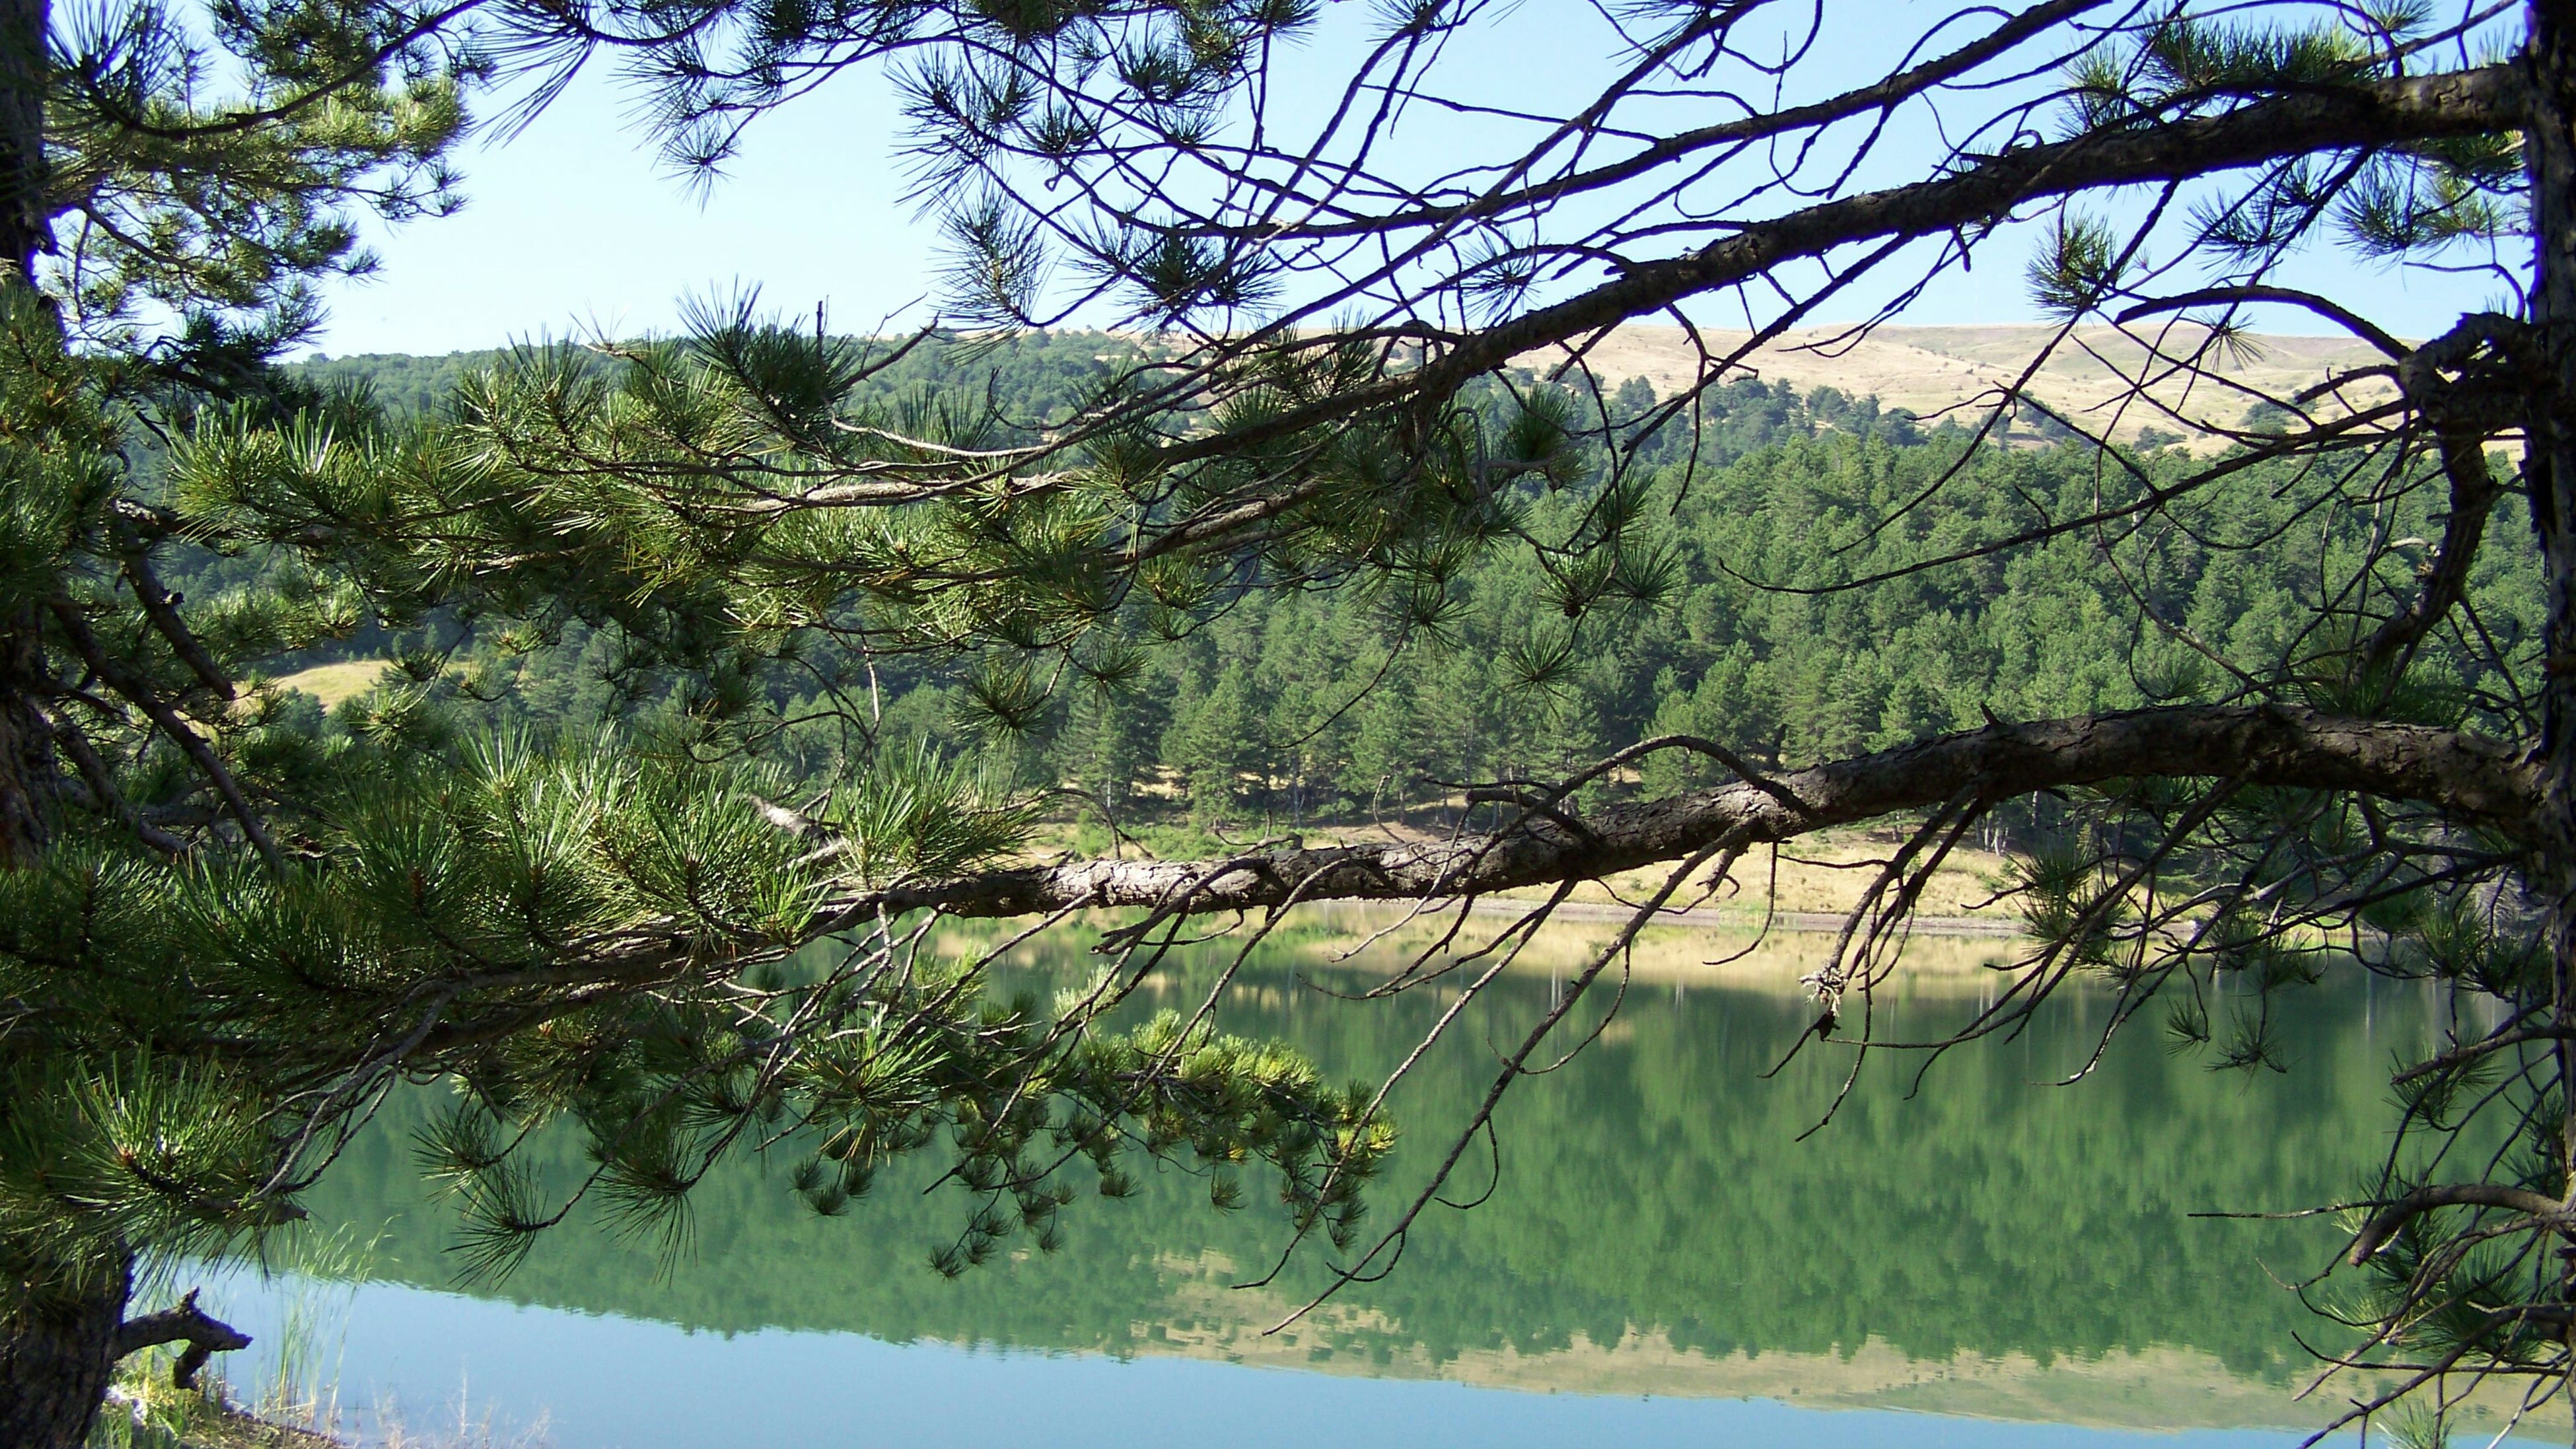 tree, water, tranquility, growth, tranquil scene, branch, nature, scenics, beauty in nature, plant, green color, clear sky, lake, river, day, idyllic, reflection, landscape, forest, outdoors